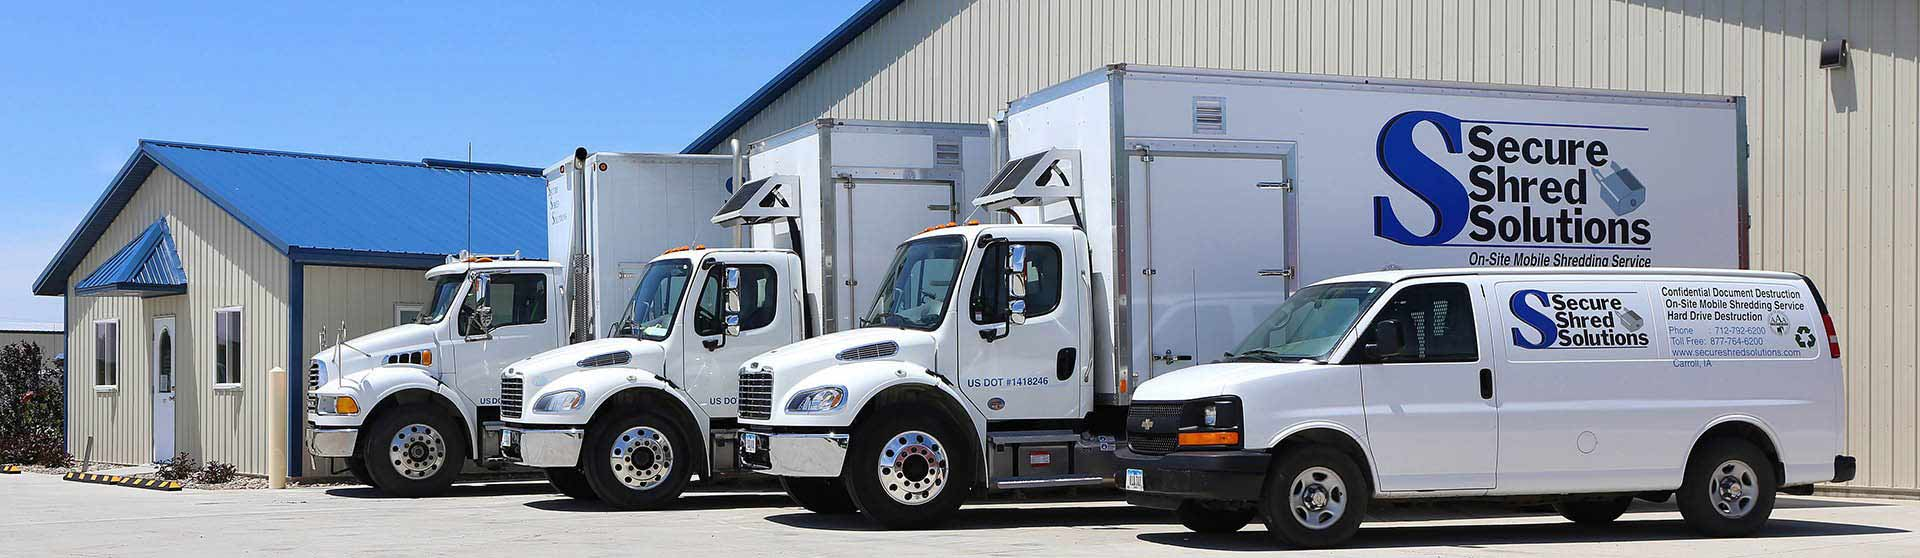 Secure Shred Solutions Document Shredding Iowa